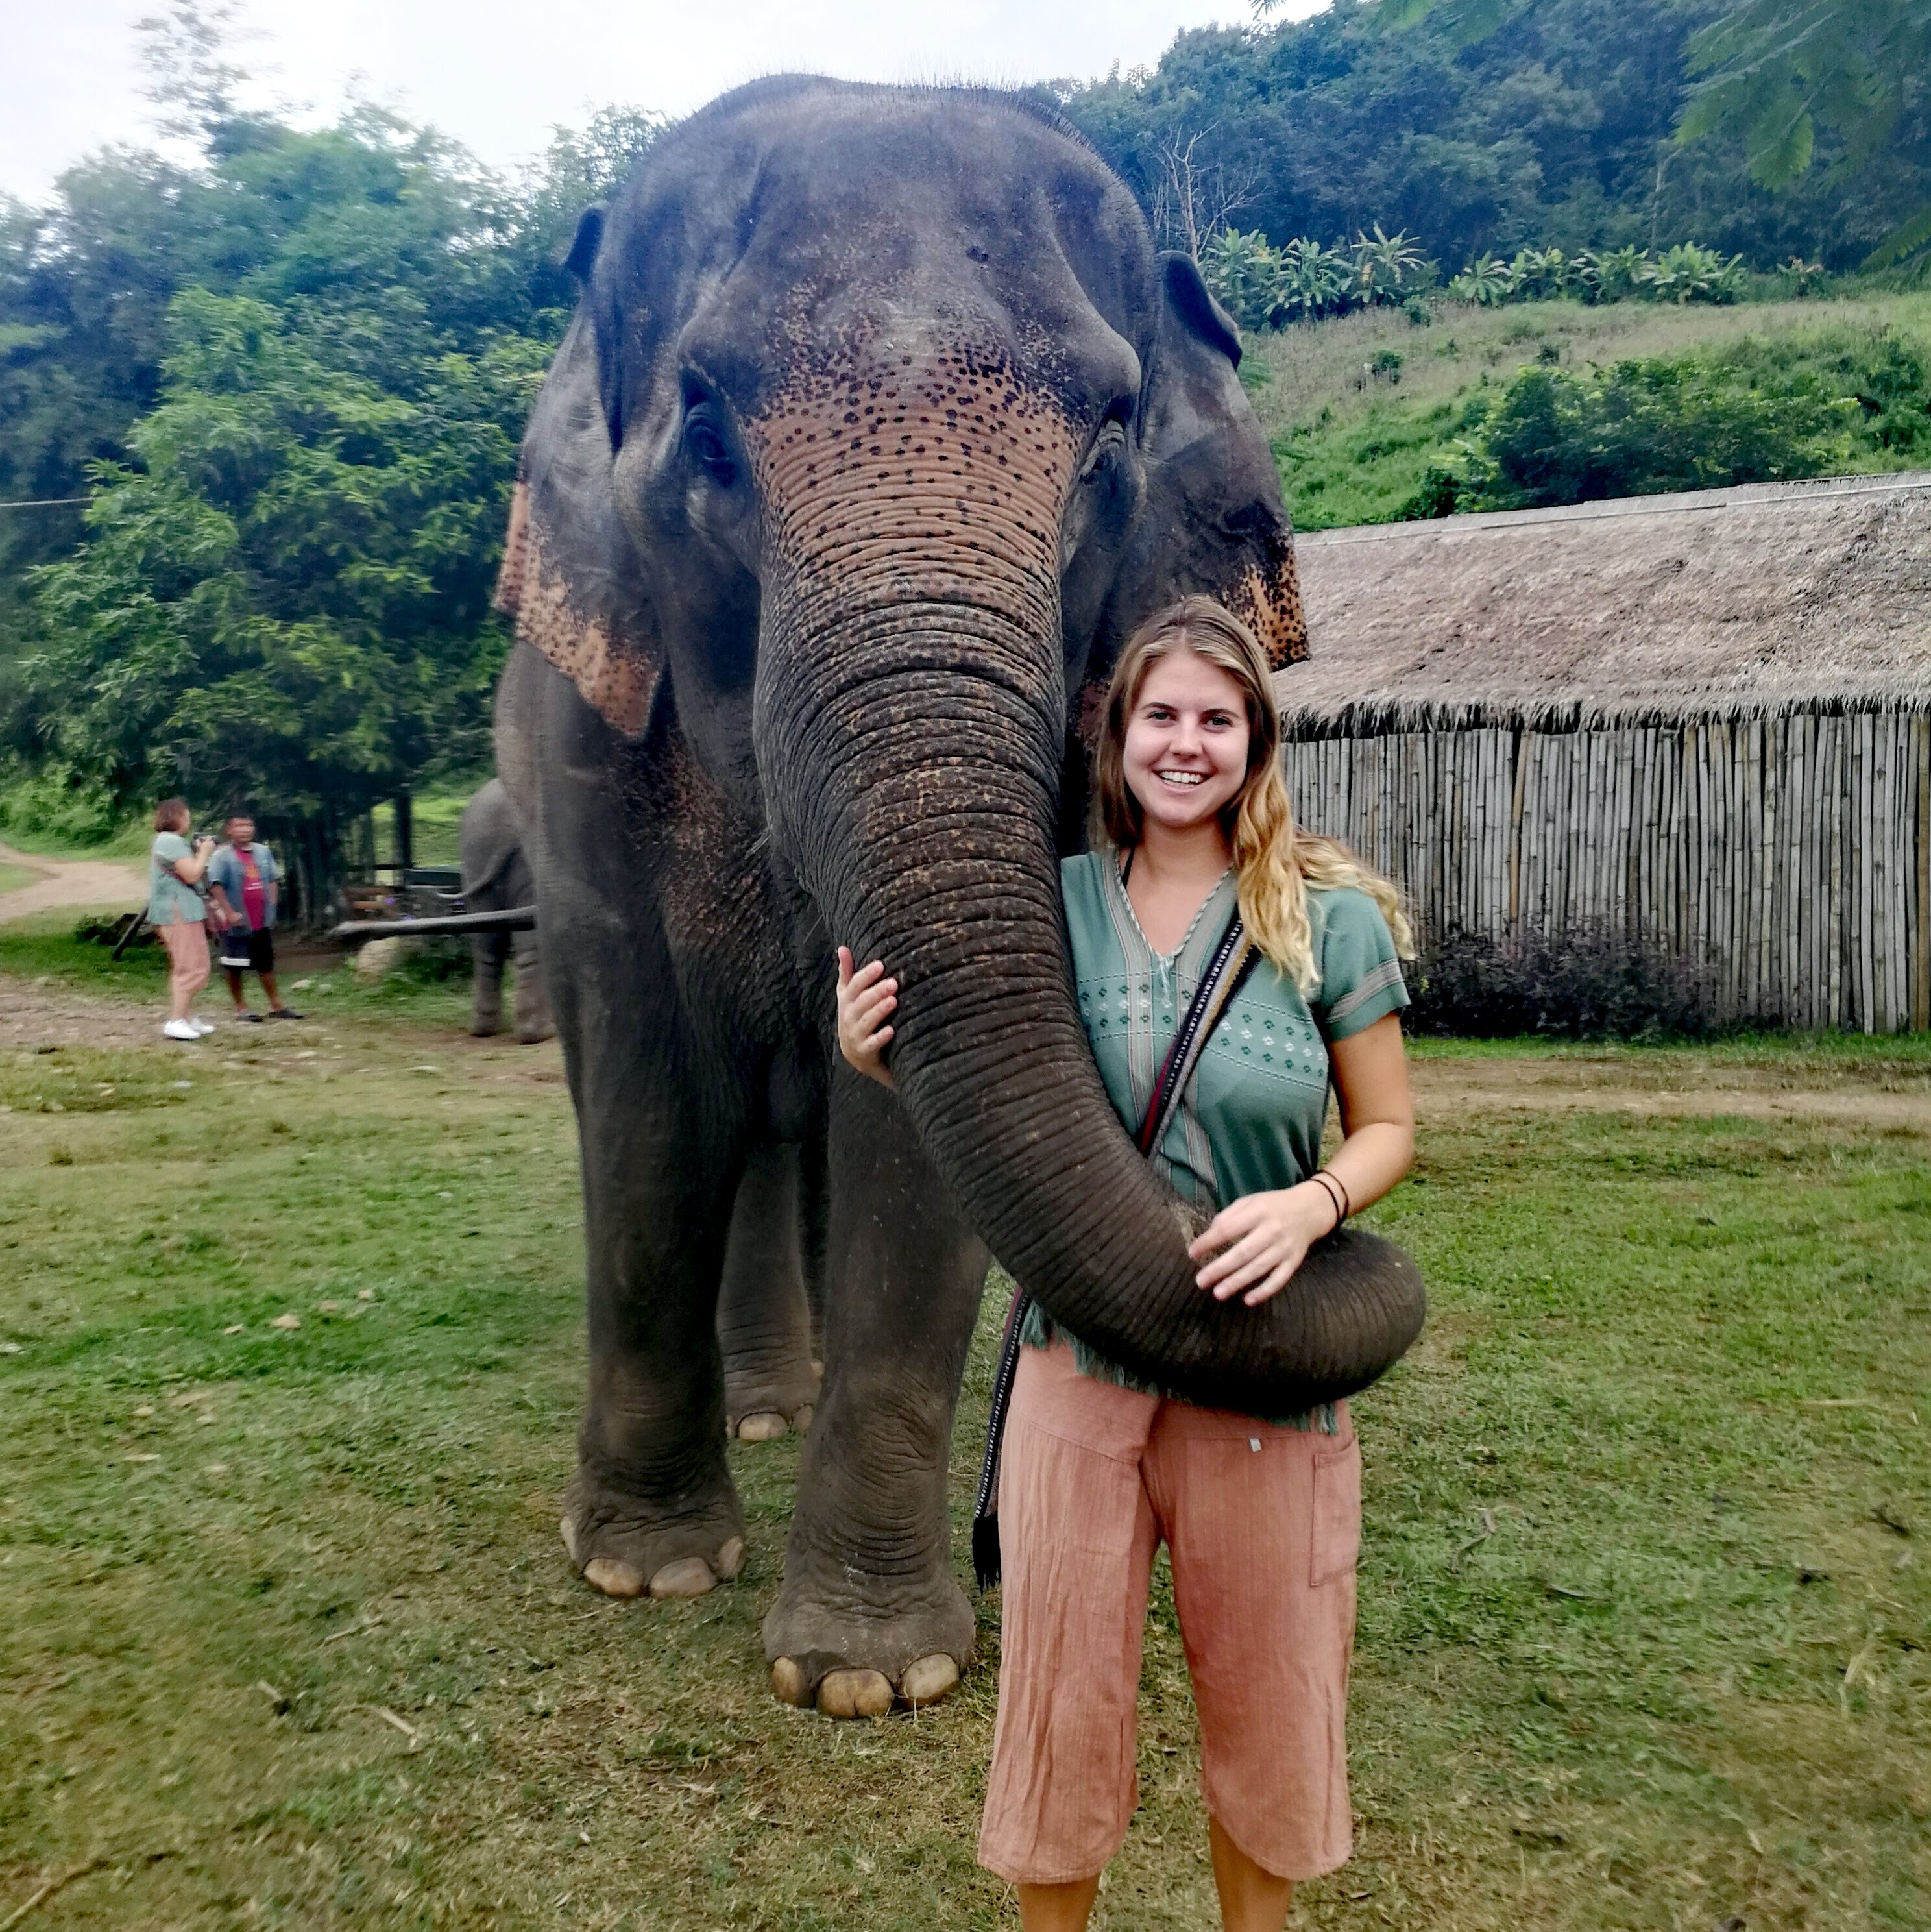 Visiting an Elephant Sanctuary in Chiang Mai, Elephants in Thailand, Thailand Elephants